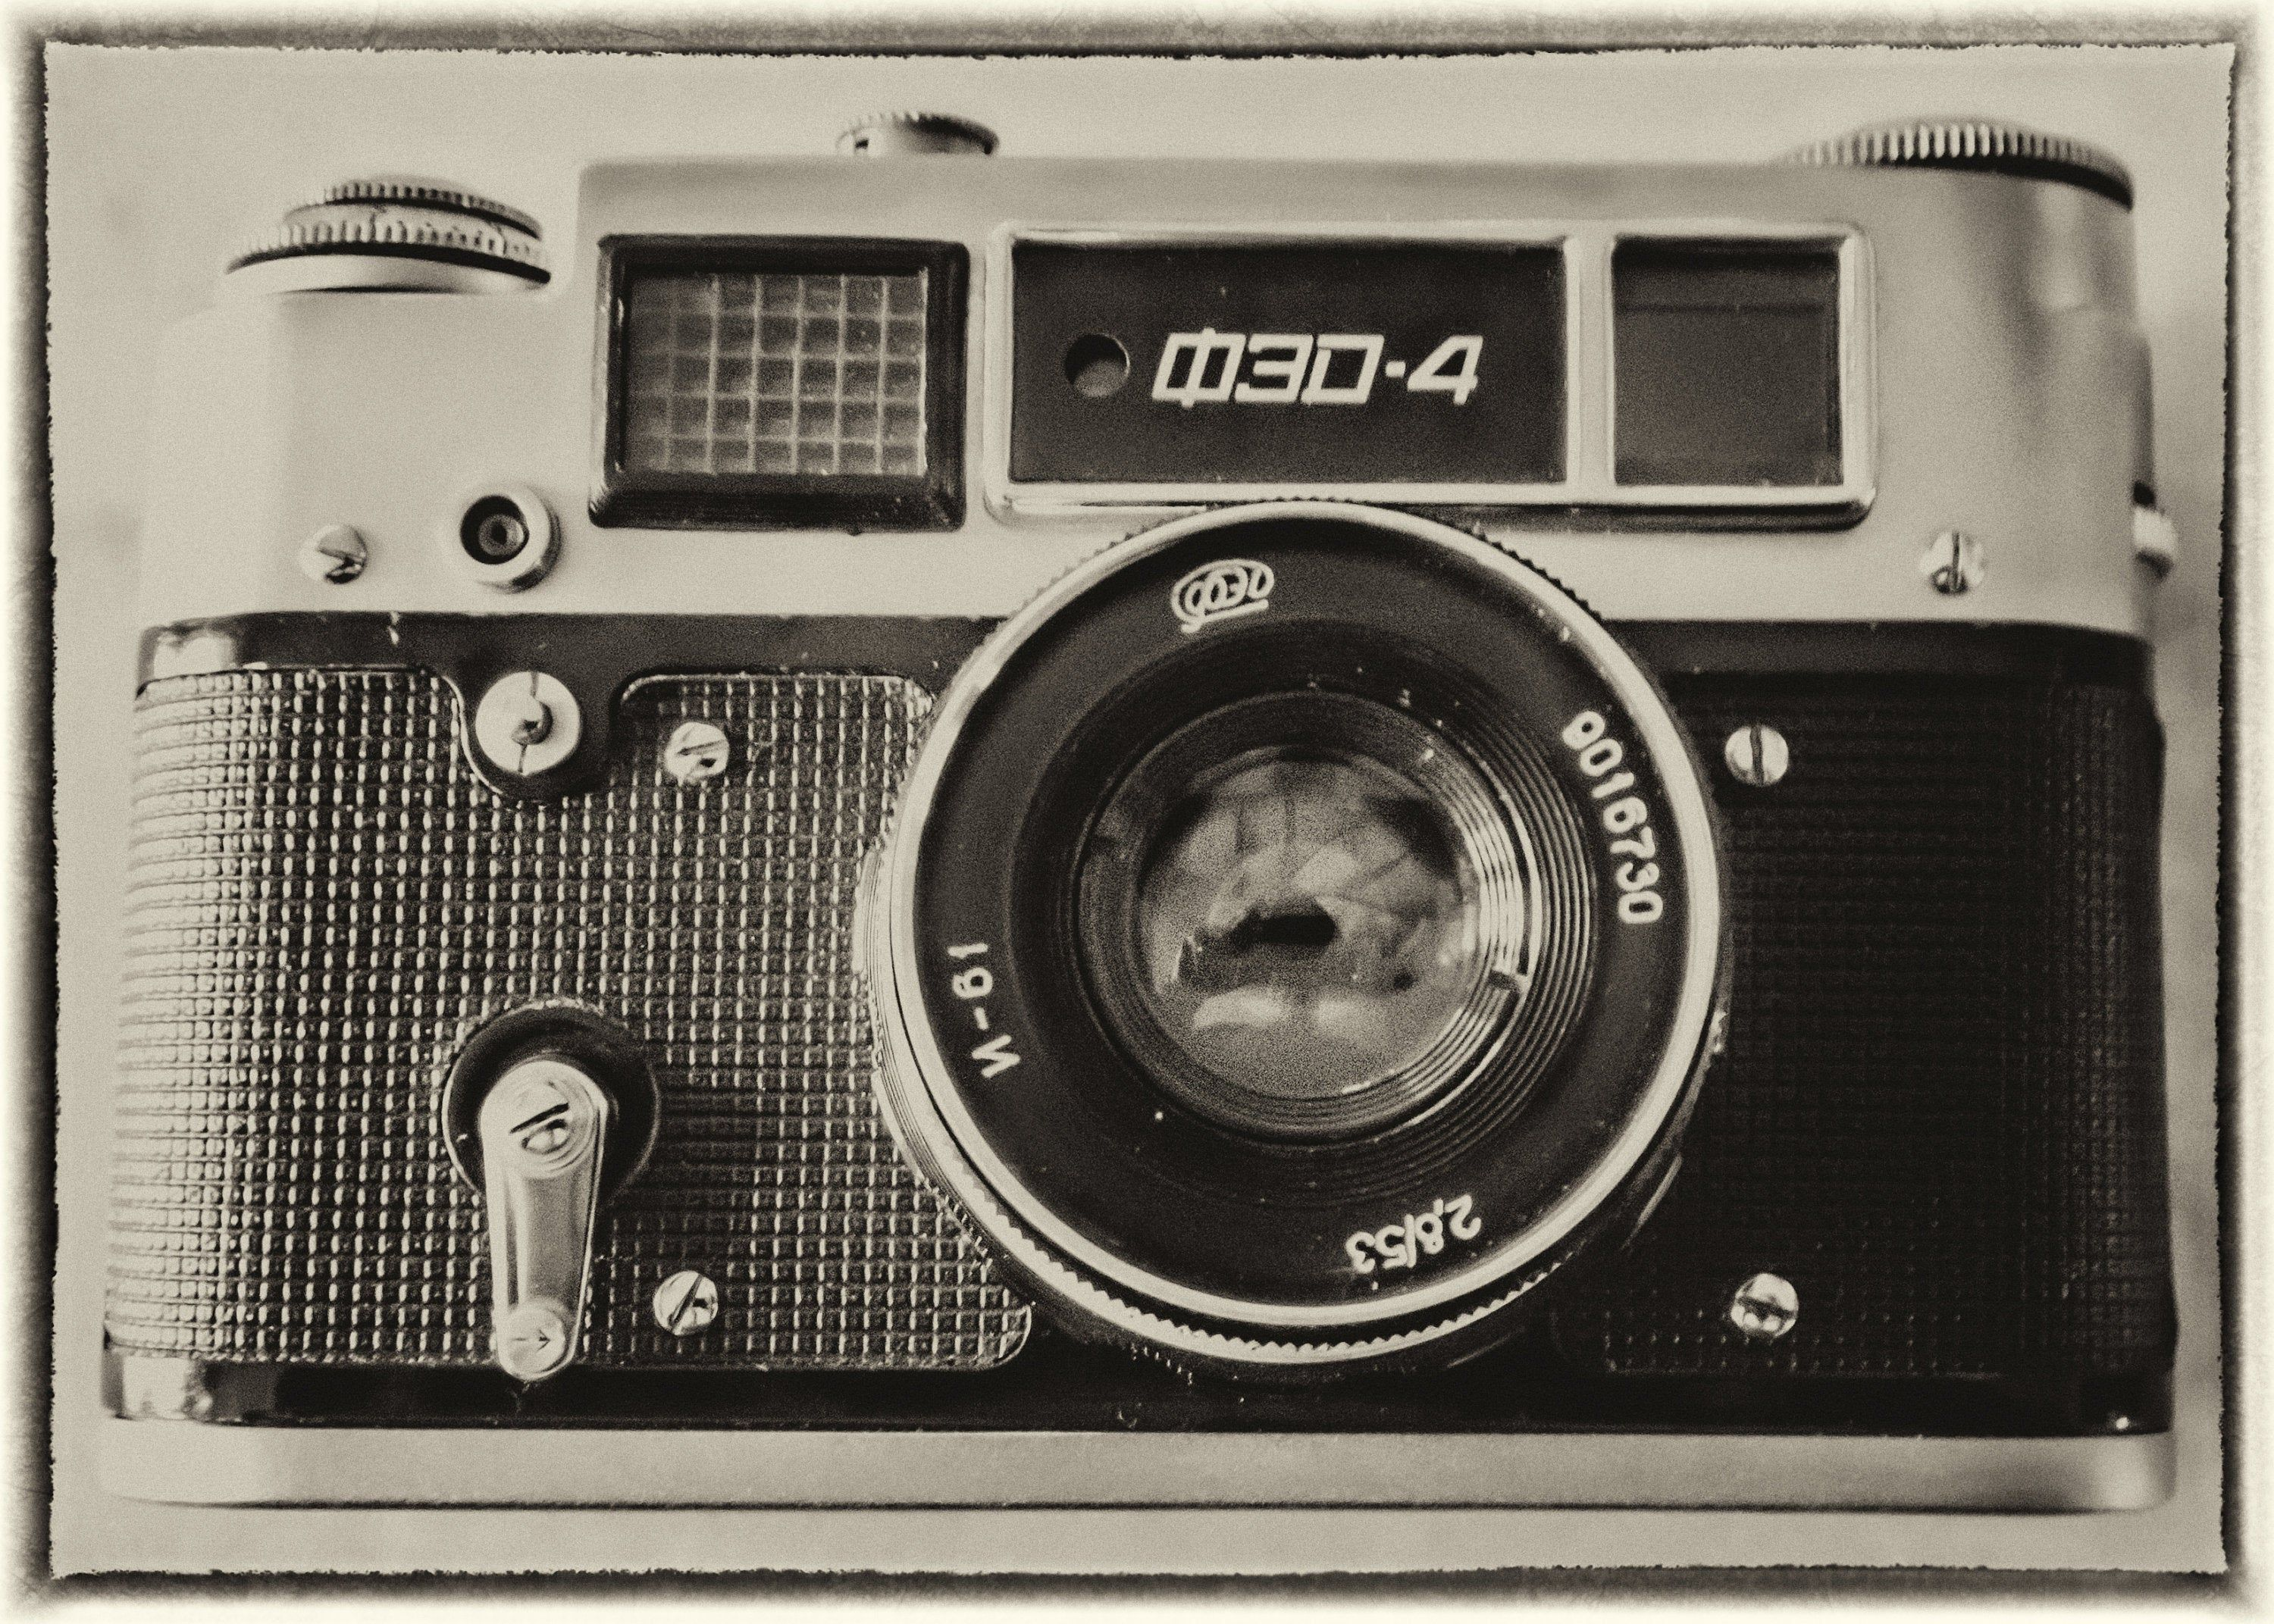 Fed 4 Vintage Russian Camera Photograph Vintage Effect Fed4 Etsy In 2020 Vintage Russian Retro Camera Dslr Photography Tips